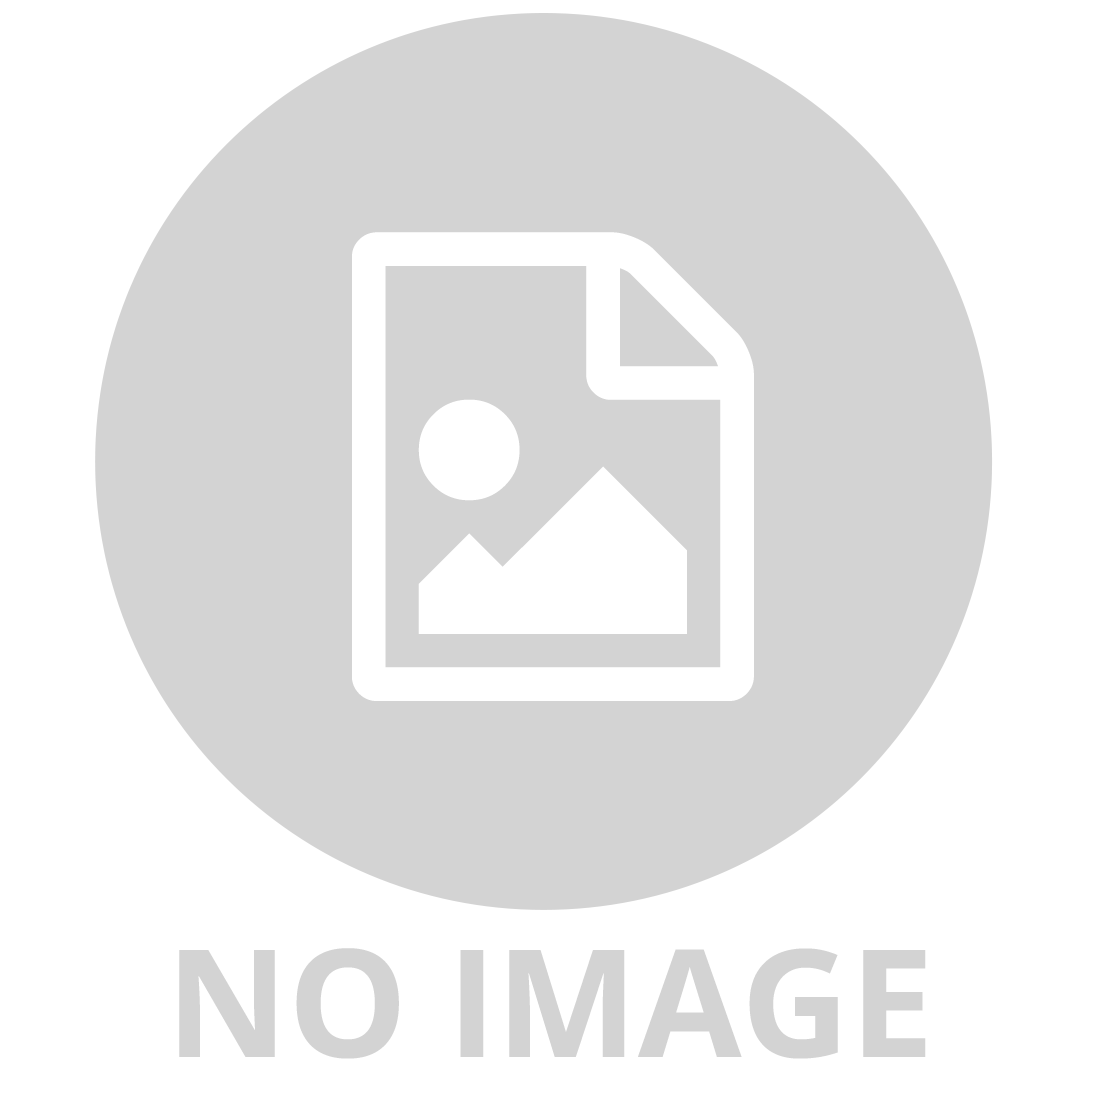 NERF POWER MOVES ROLE PLAY MARVEL SPIDERMAN